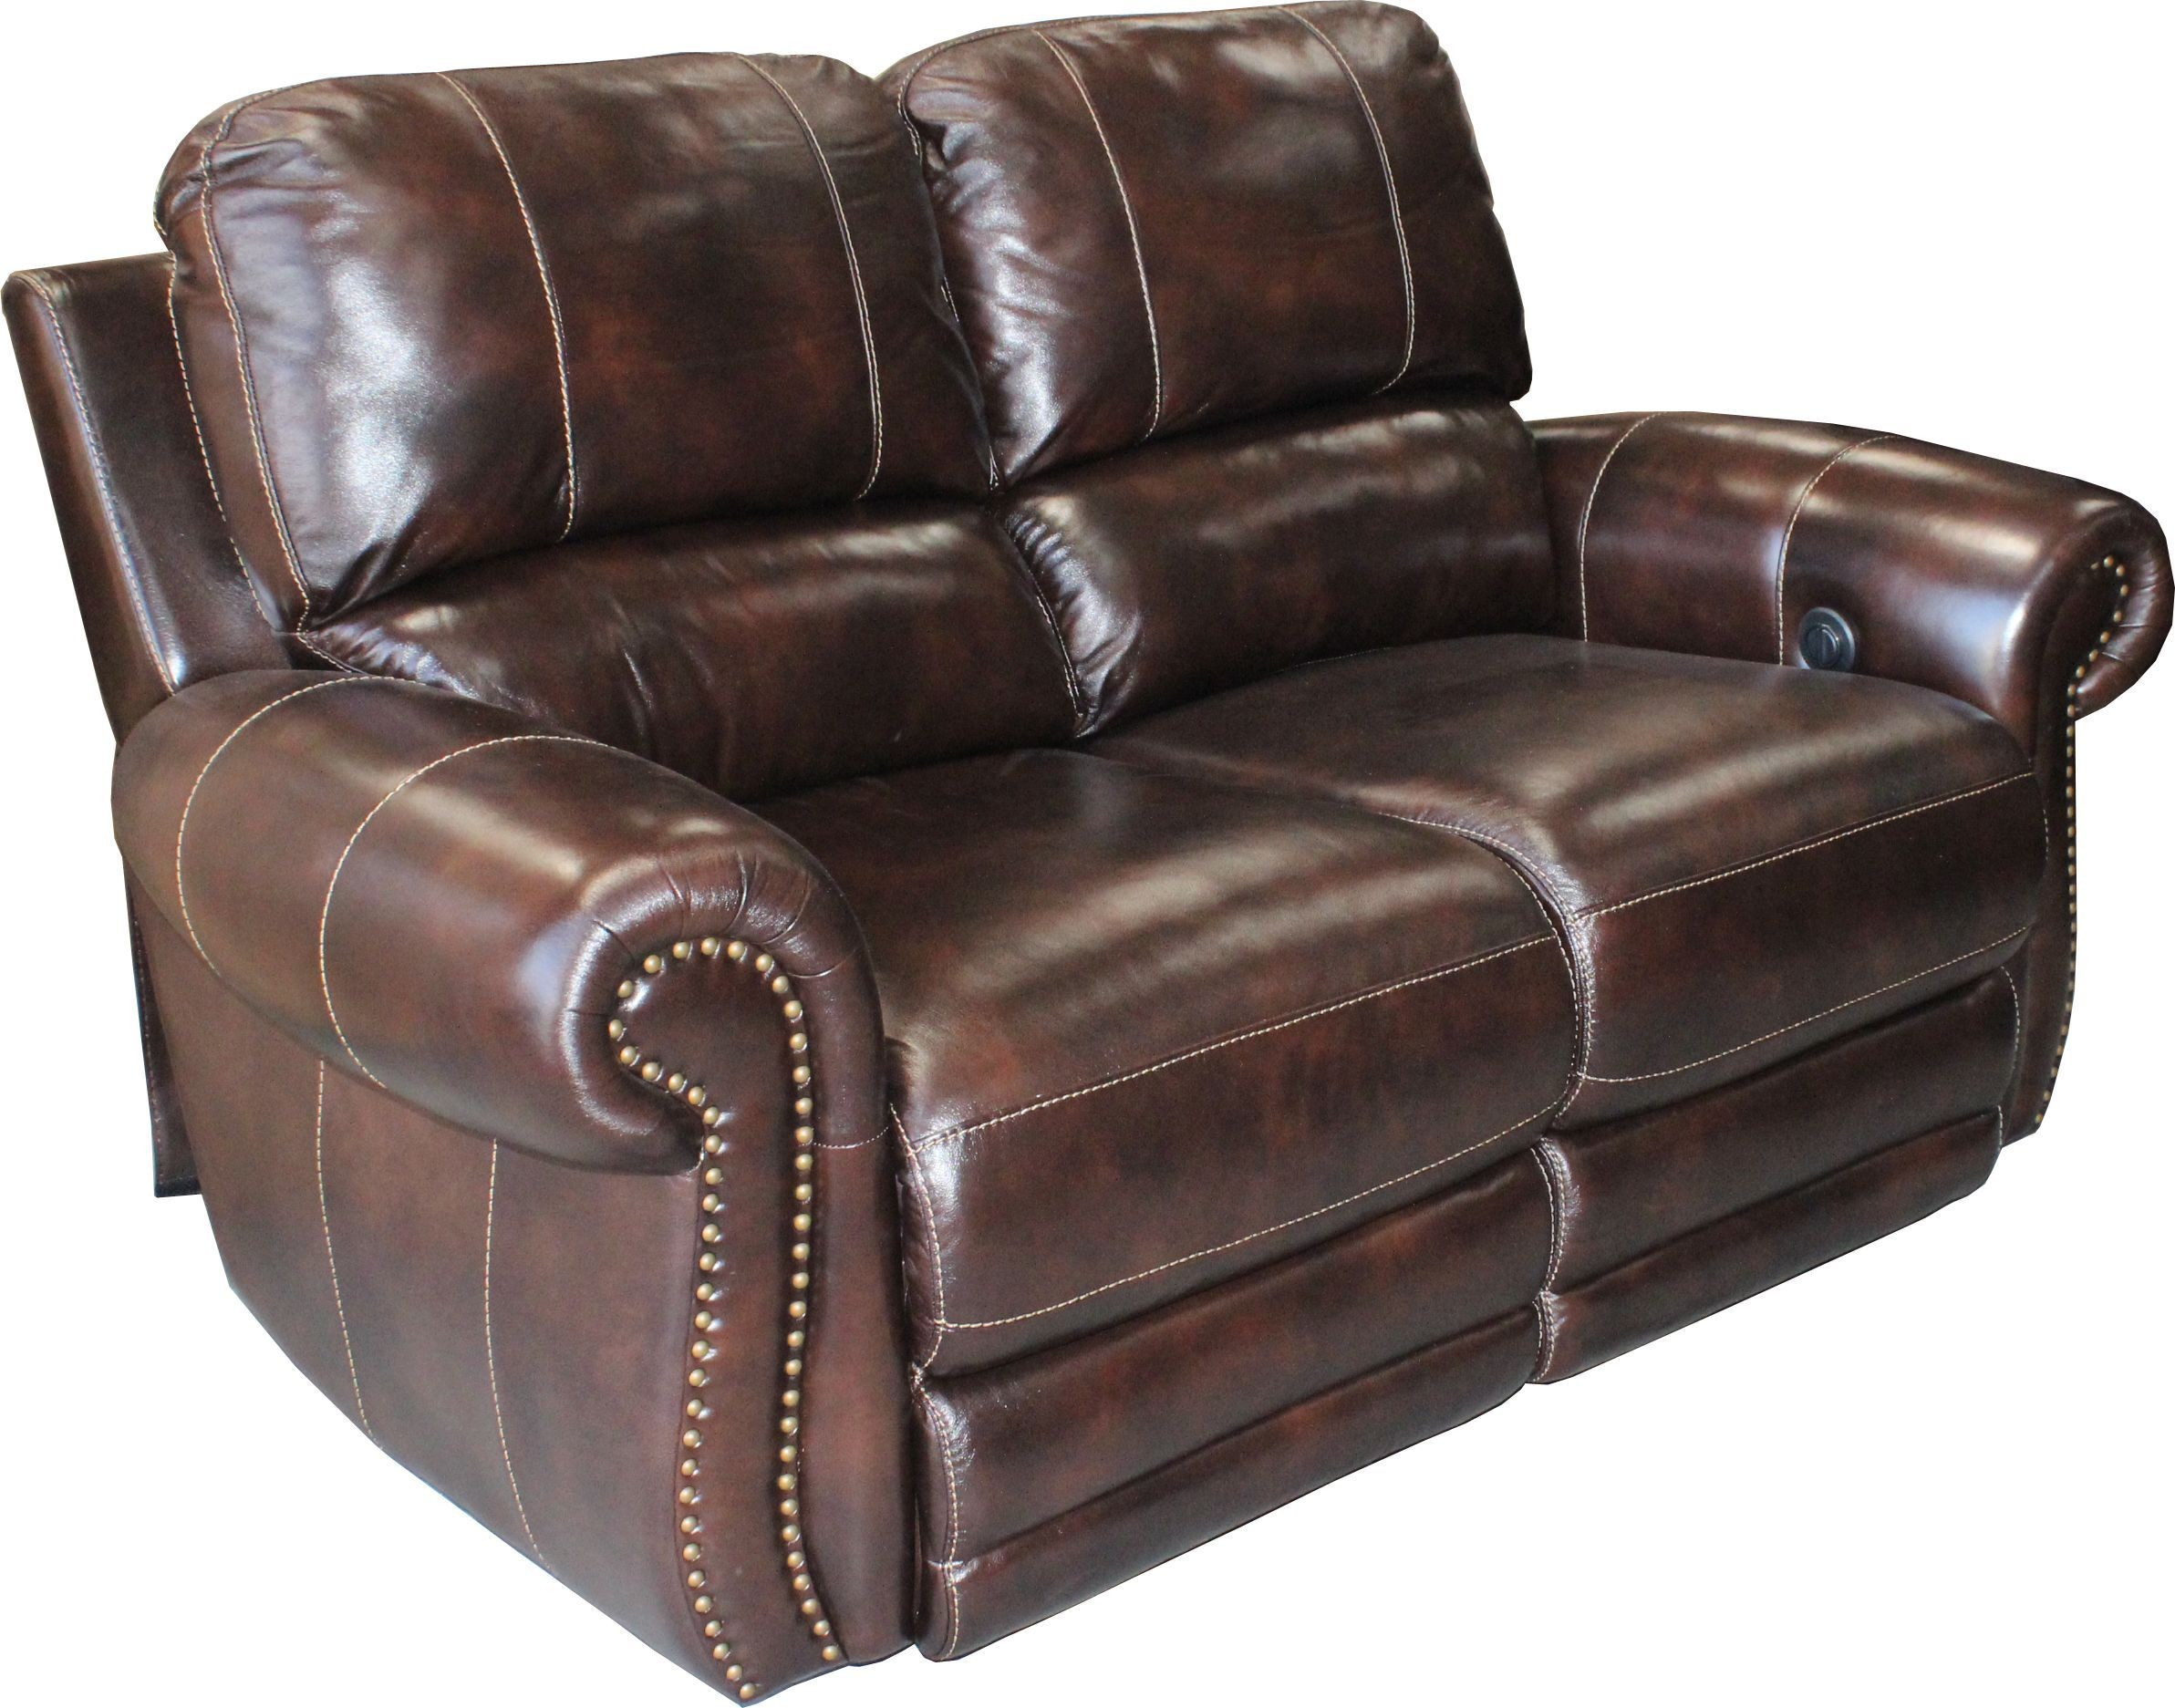 Thurston shadow dual power reclining loveseat from parker living mthu 822p sh coleman furniture Power loveseat recliner